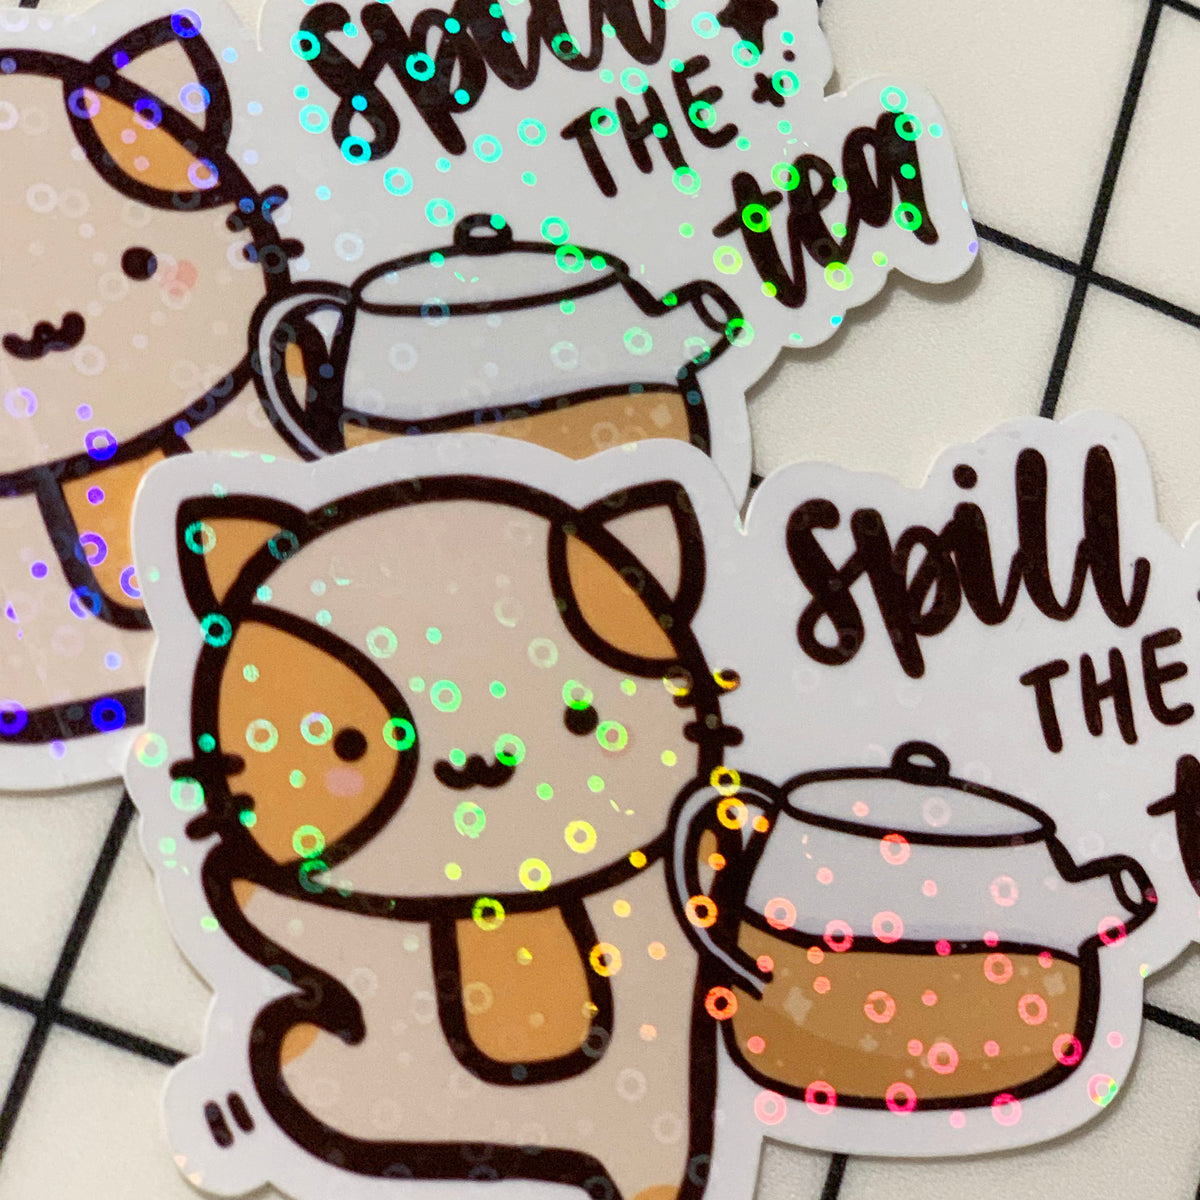 Spill the Tea Sticker Flake